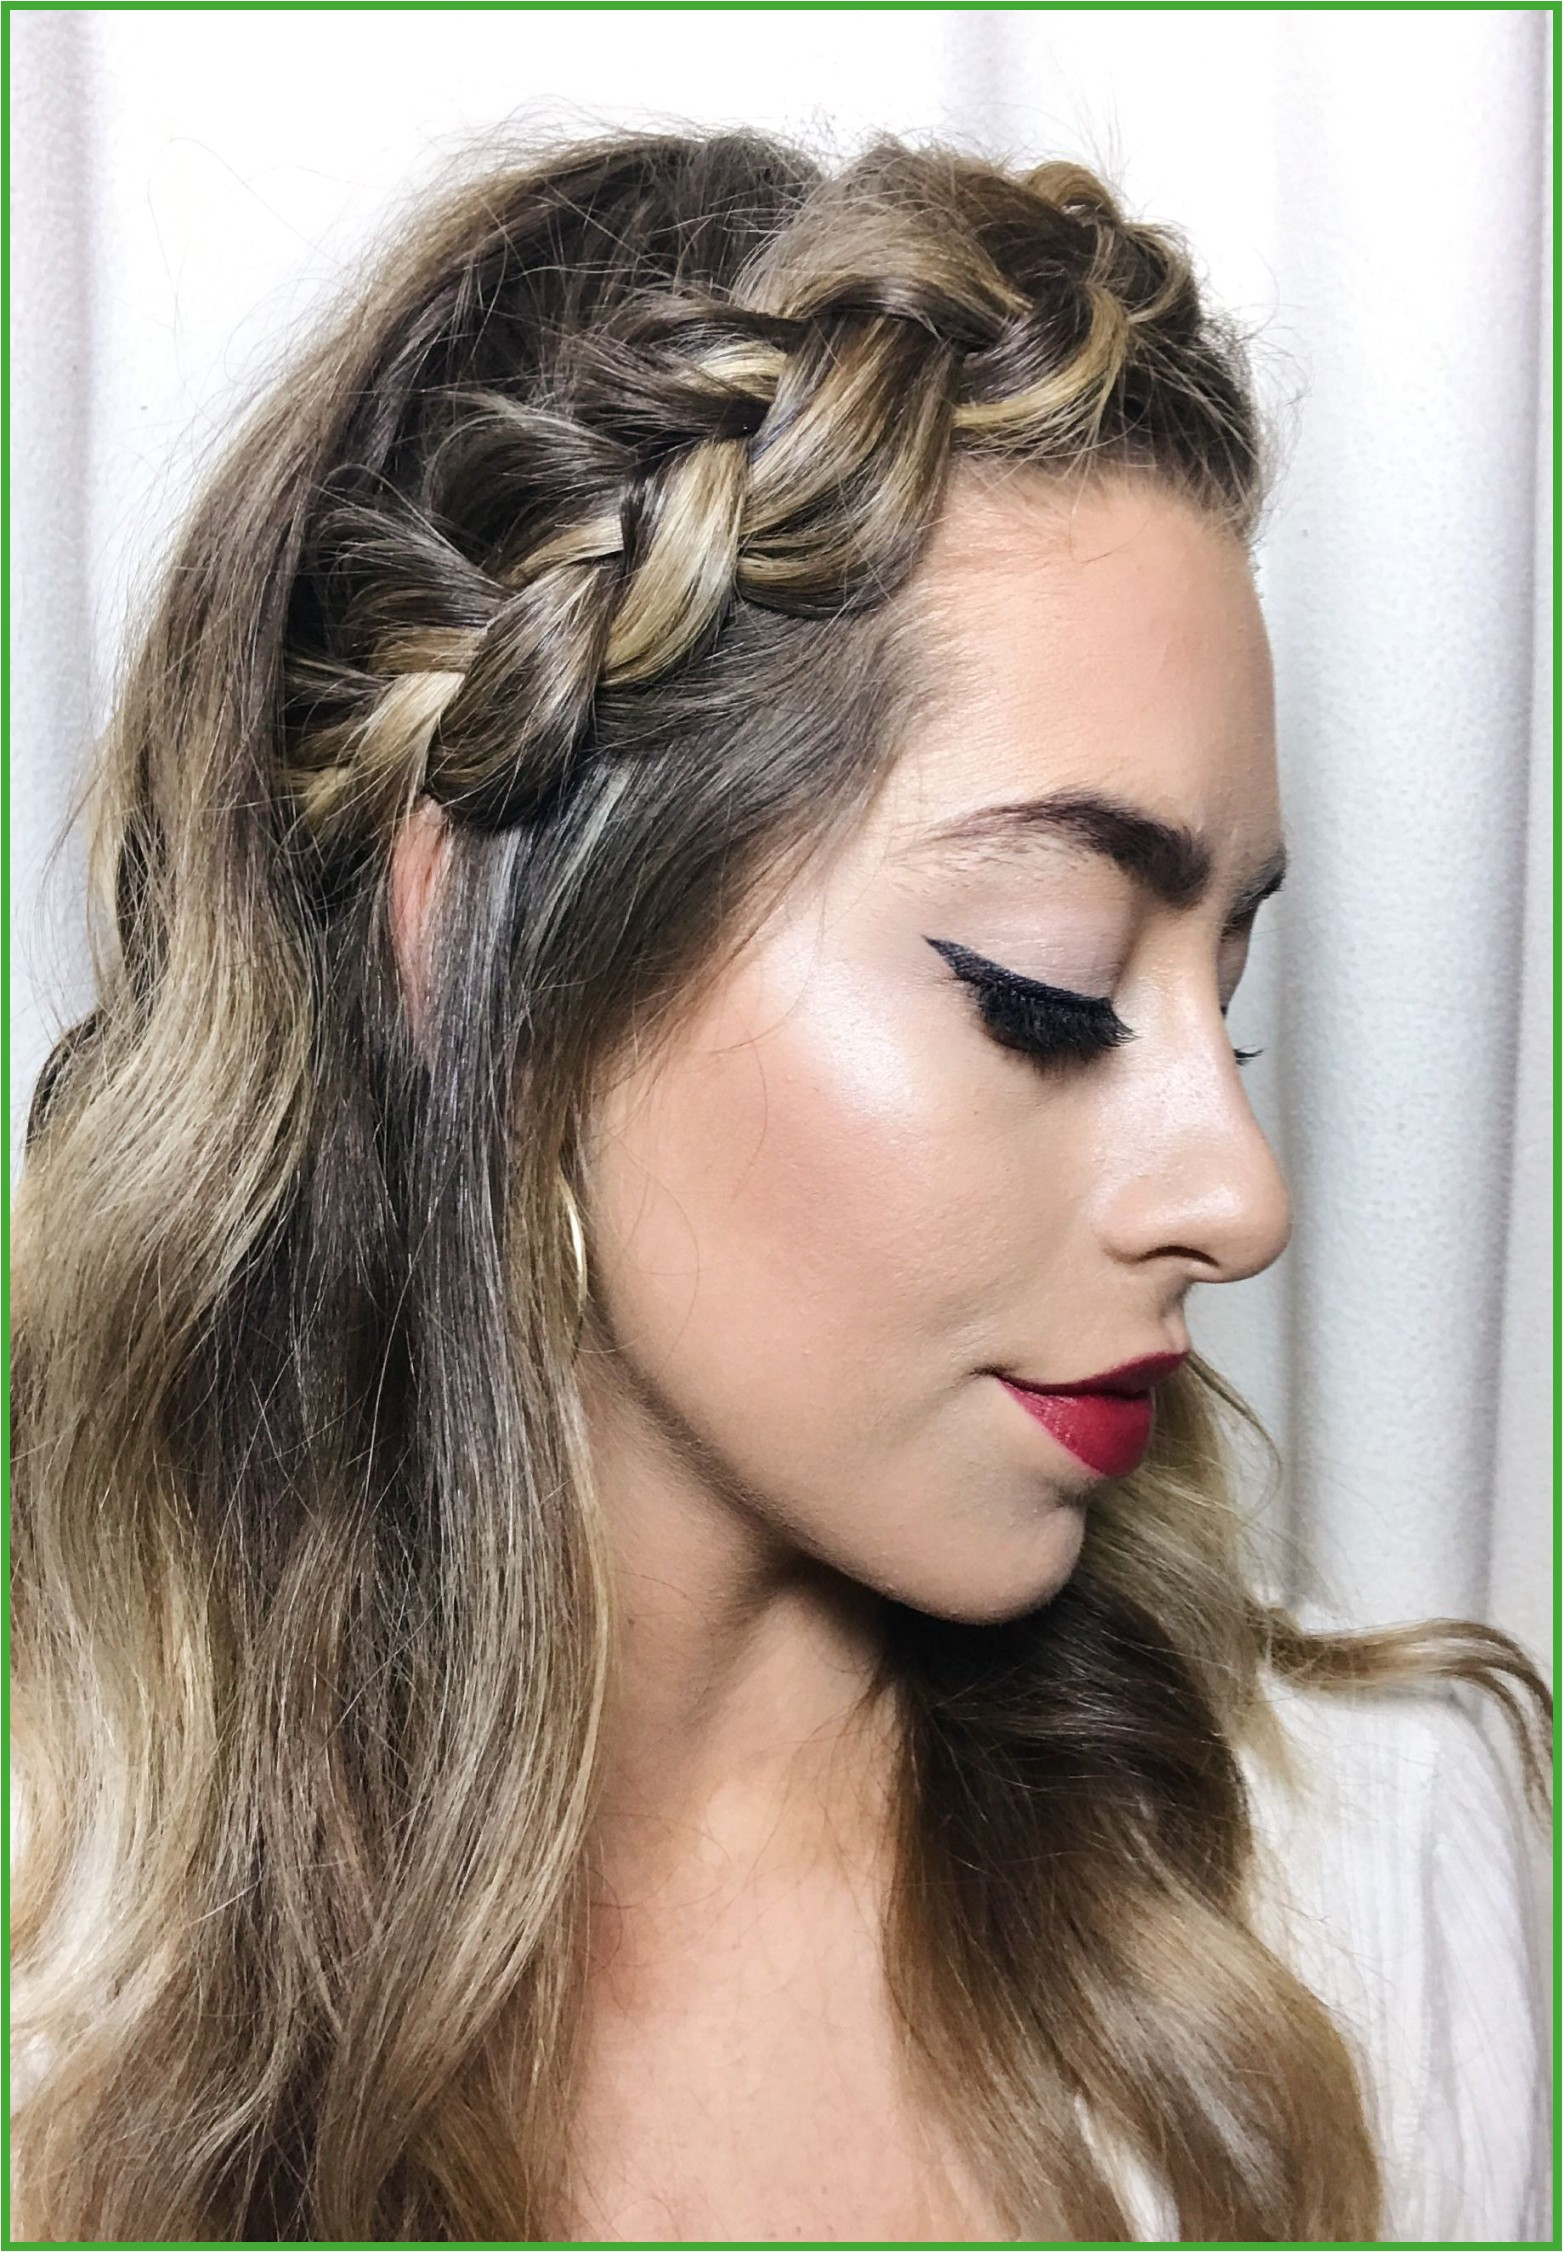 Women Hairstyles Blonde Round Faces braided hairstyles makeup long hair